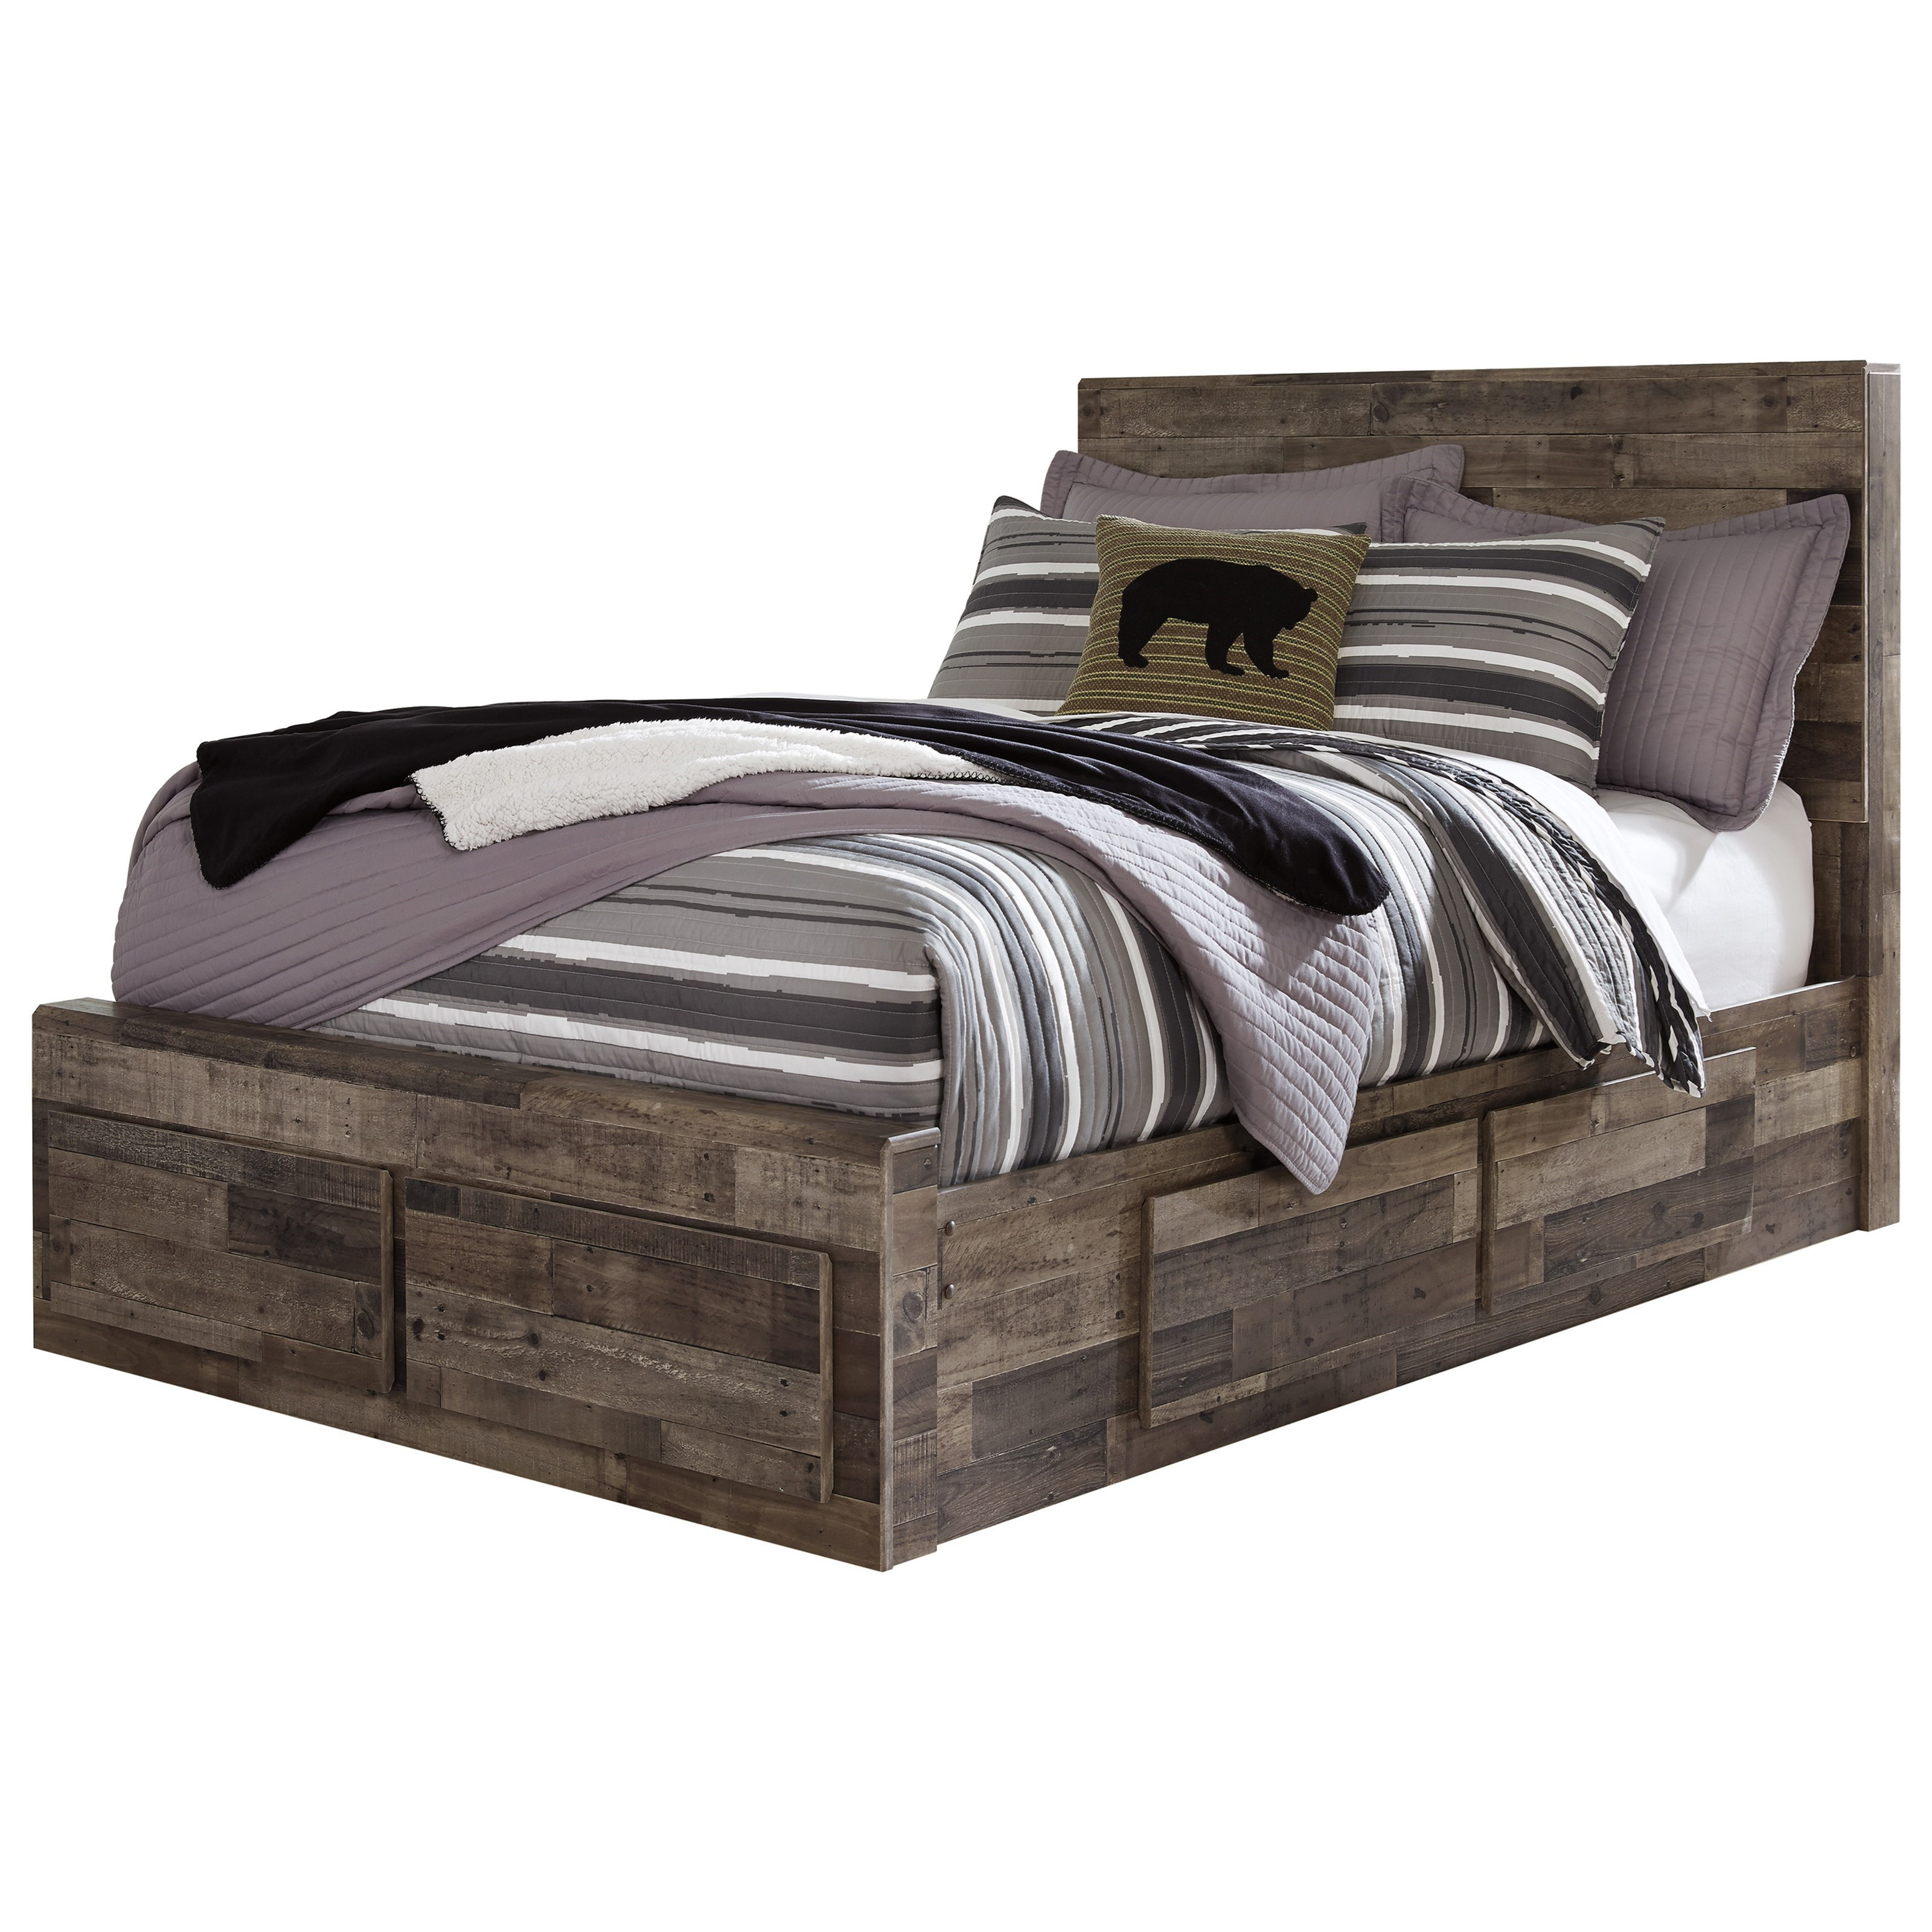 Benchcraft By Ashley Derekson Rustic Modern Full Storage Bed With 6 Drawers Royal Furniture Platform Beds Low Profile Beds